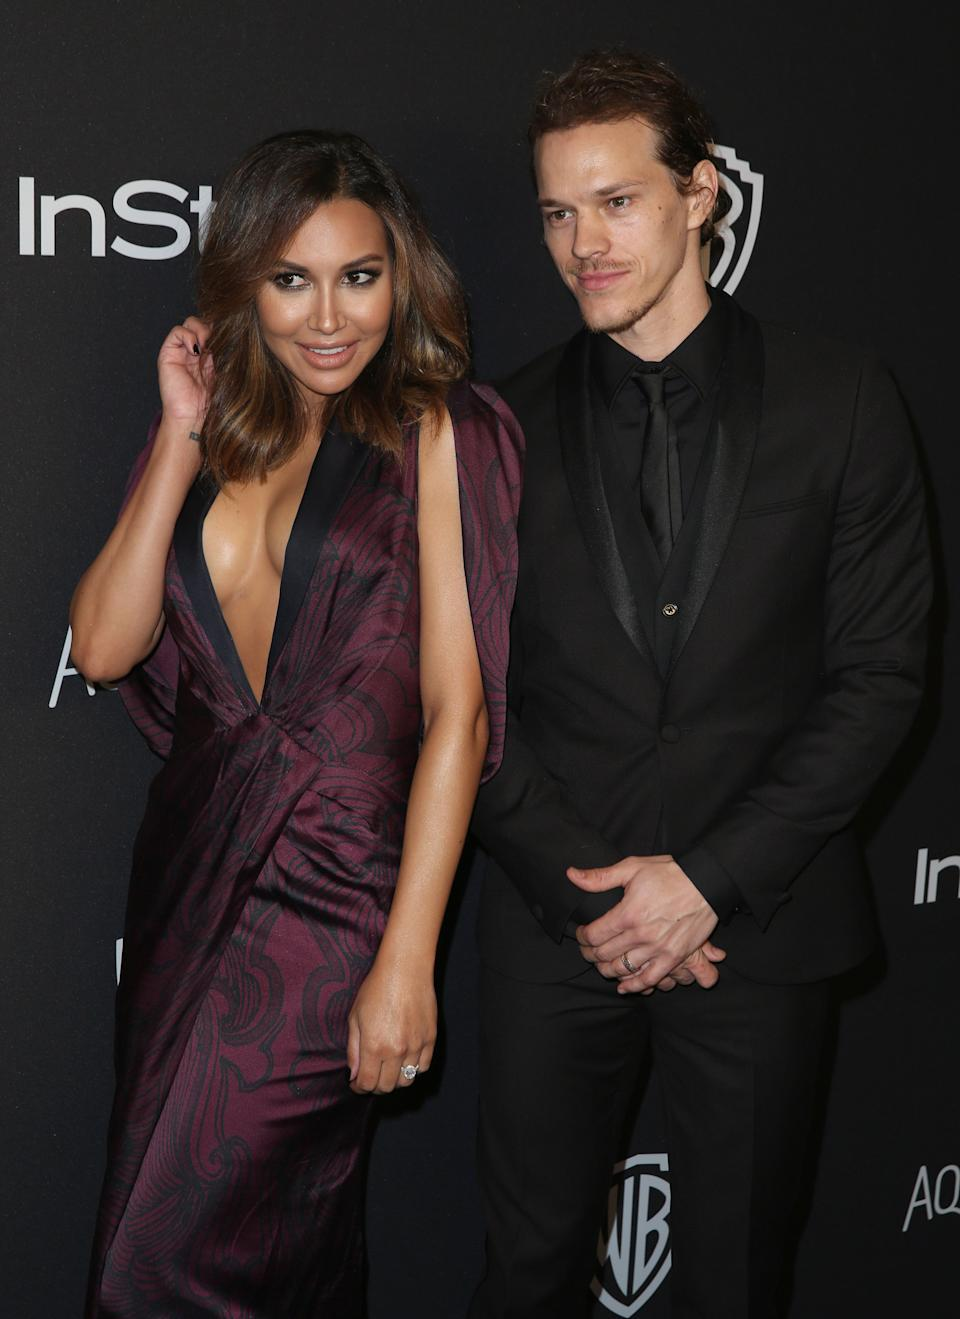 Naya Rivera, left, and Ryan Dorsey arrive at the InStyle and Warner Bros. Golden Globes afterparty at the Beverly Hilton Hotel on Sunday, Jan. 10, 2016, in Beverly Hills, Calif.